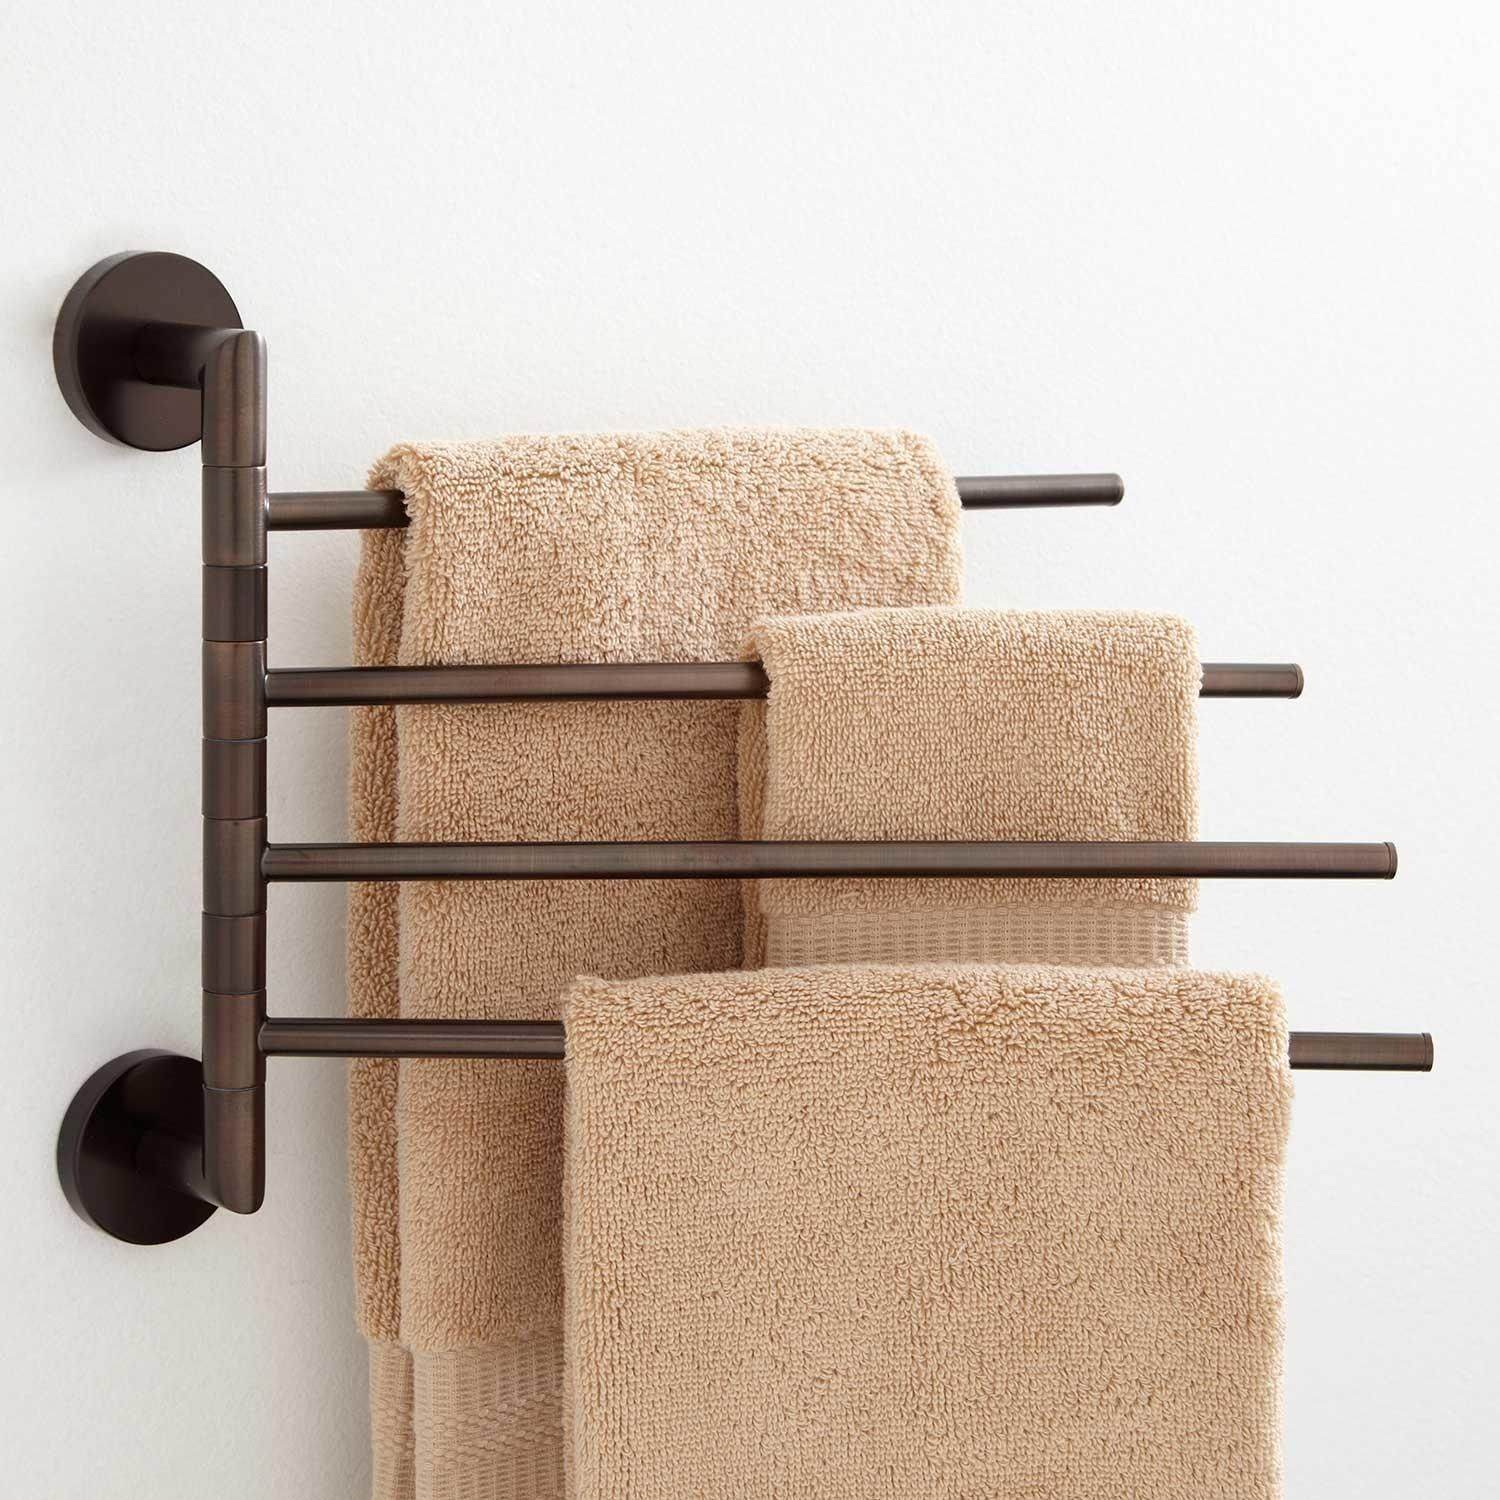 Colvin Quadruple Swing Arm Towel Bar Towel Holders Bathroom